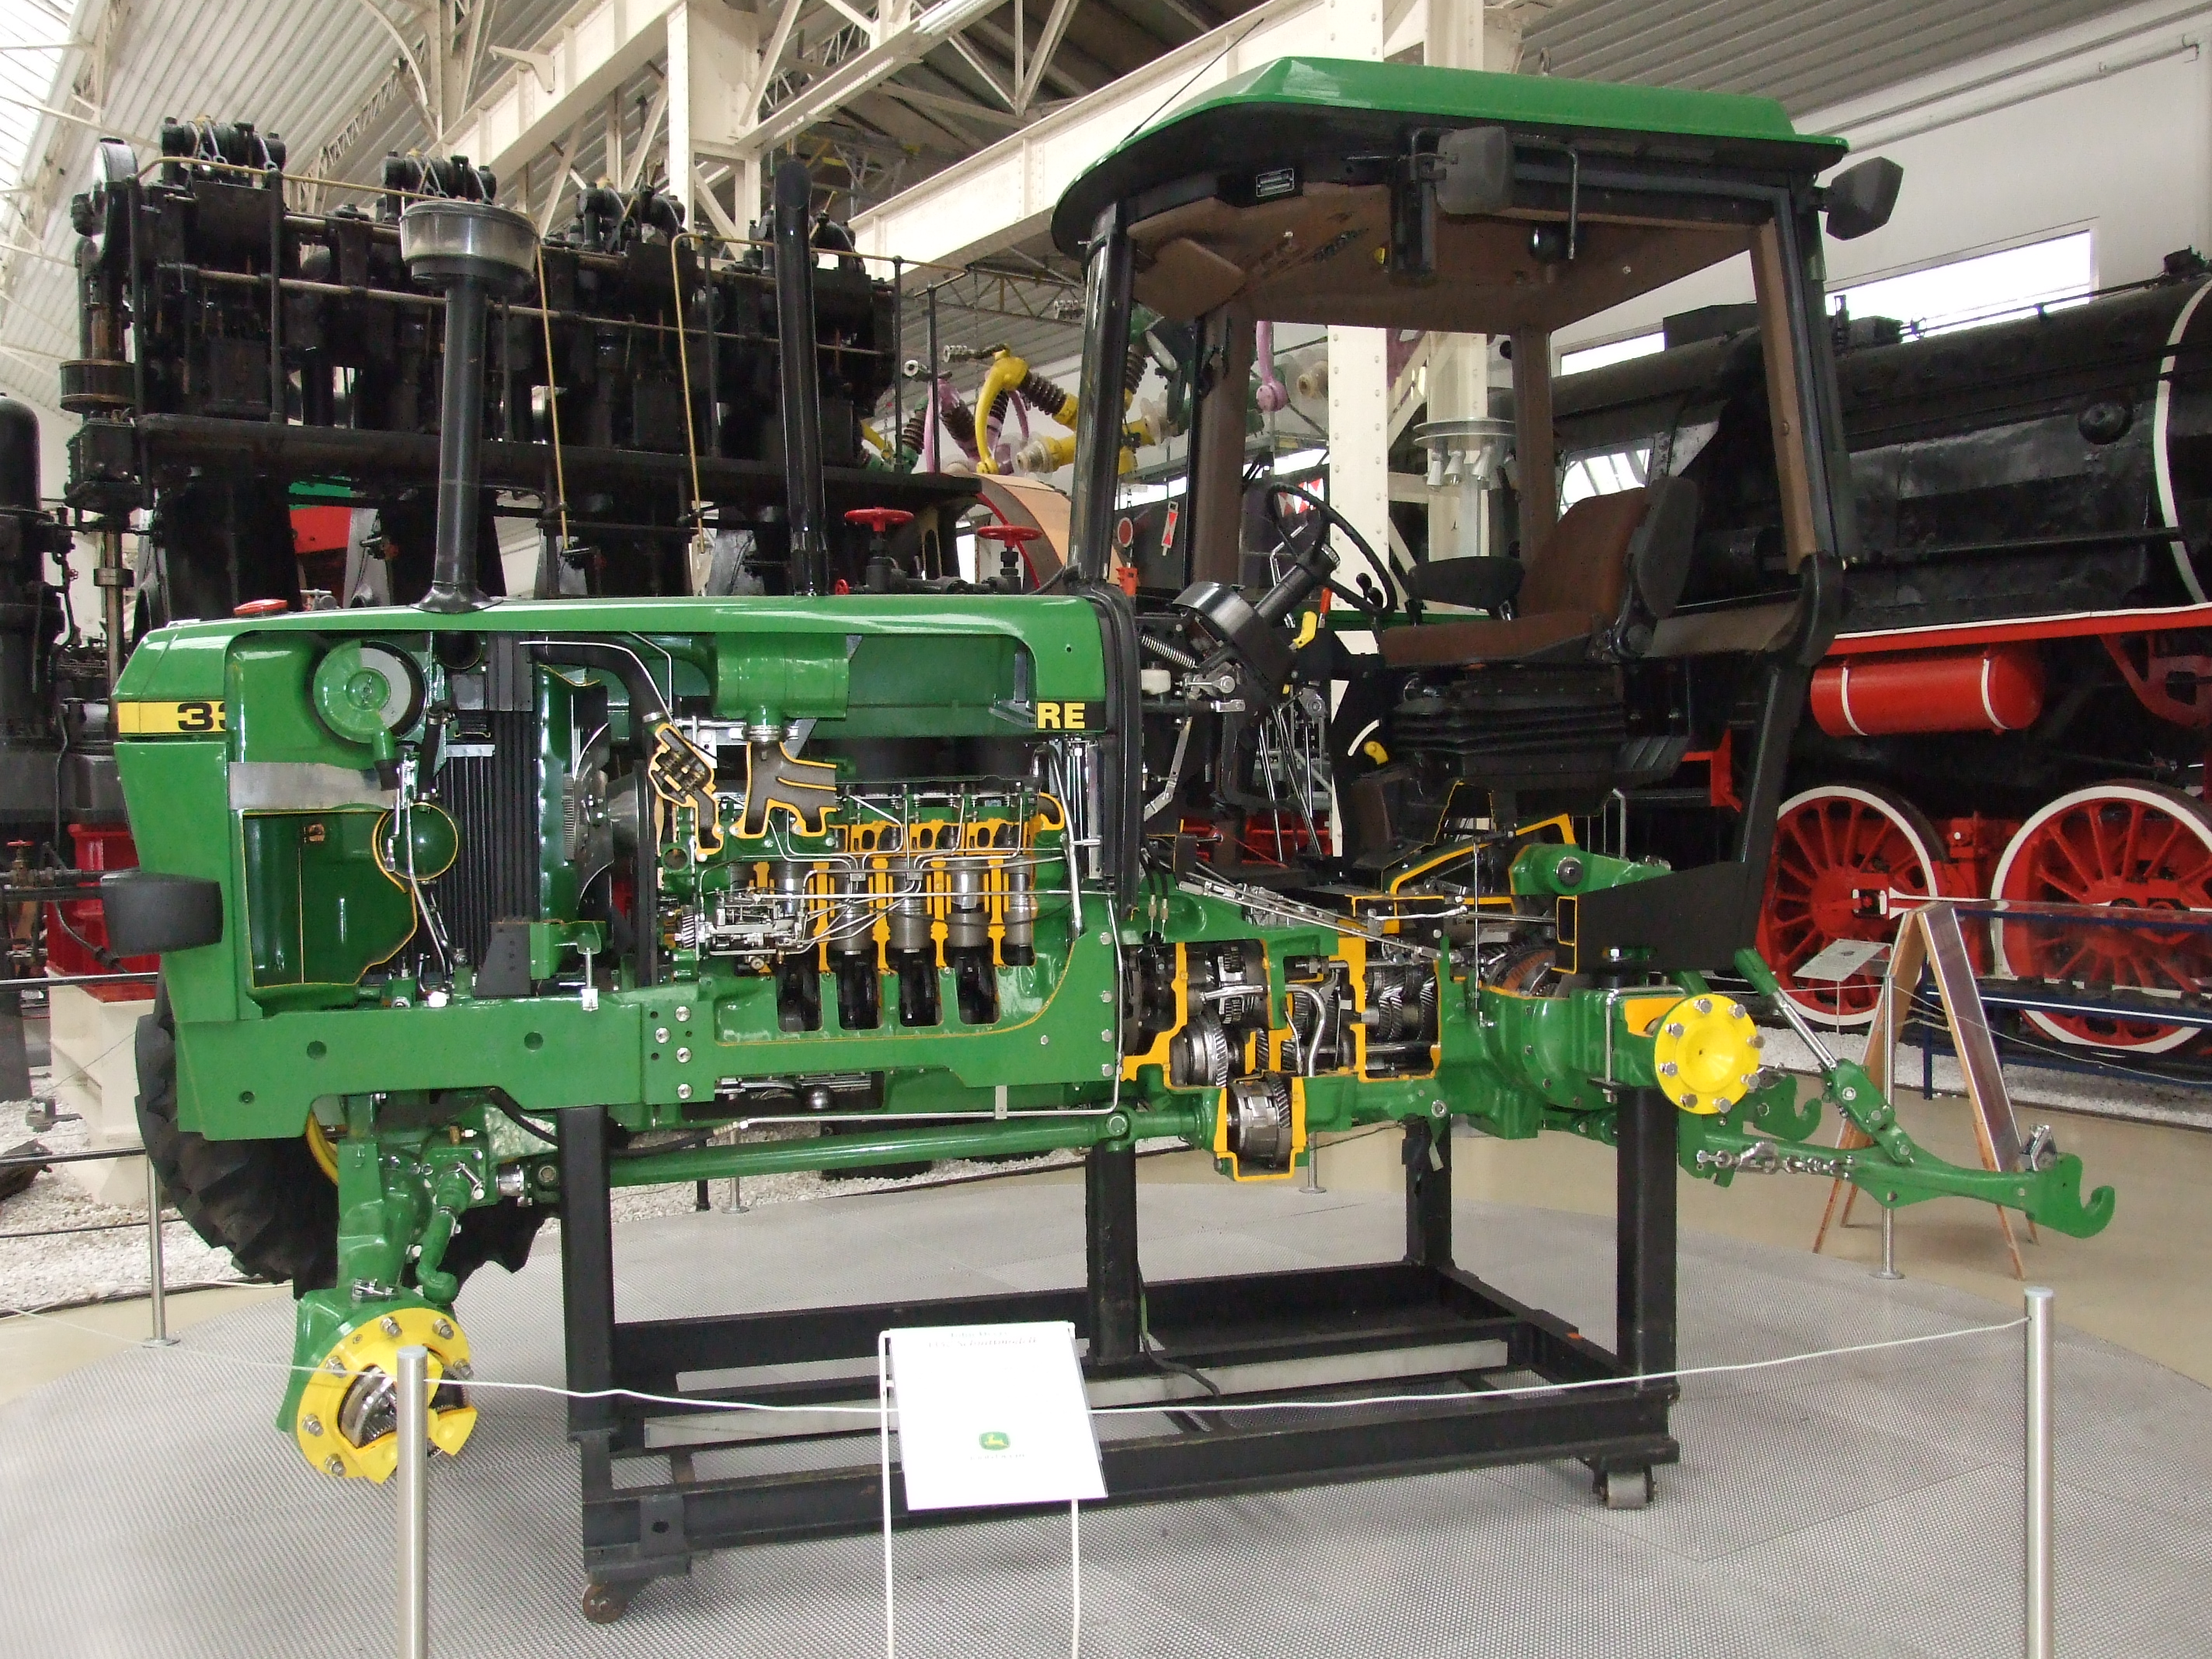 John deere waterloo photo - 2